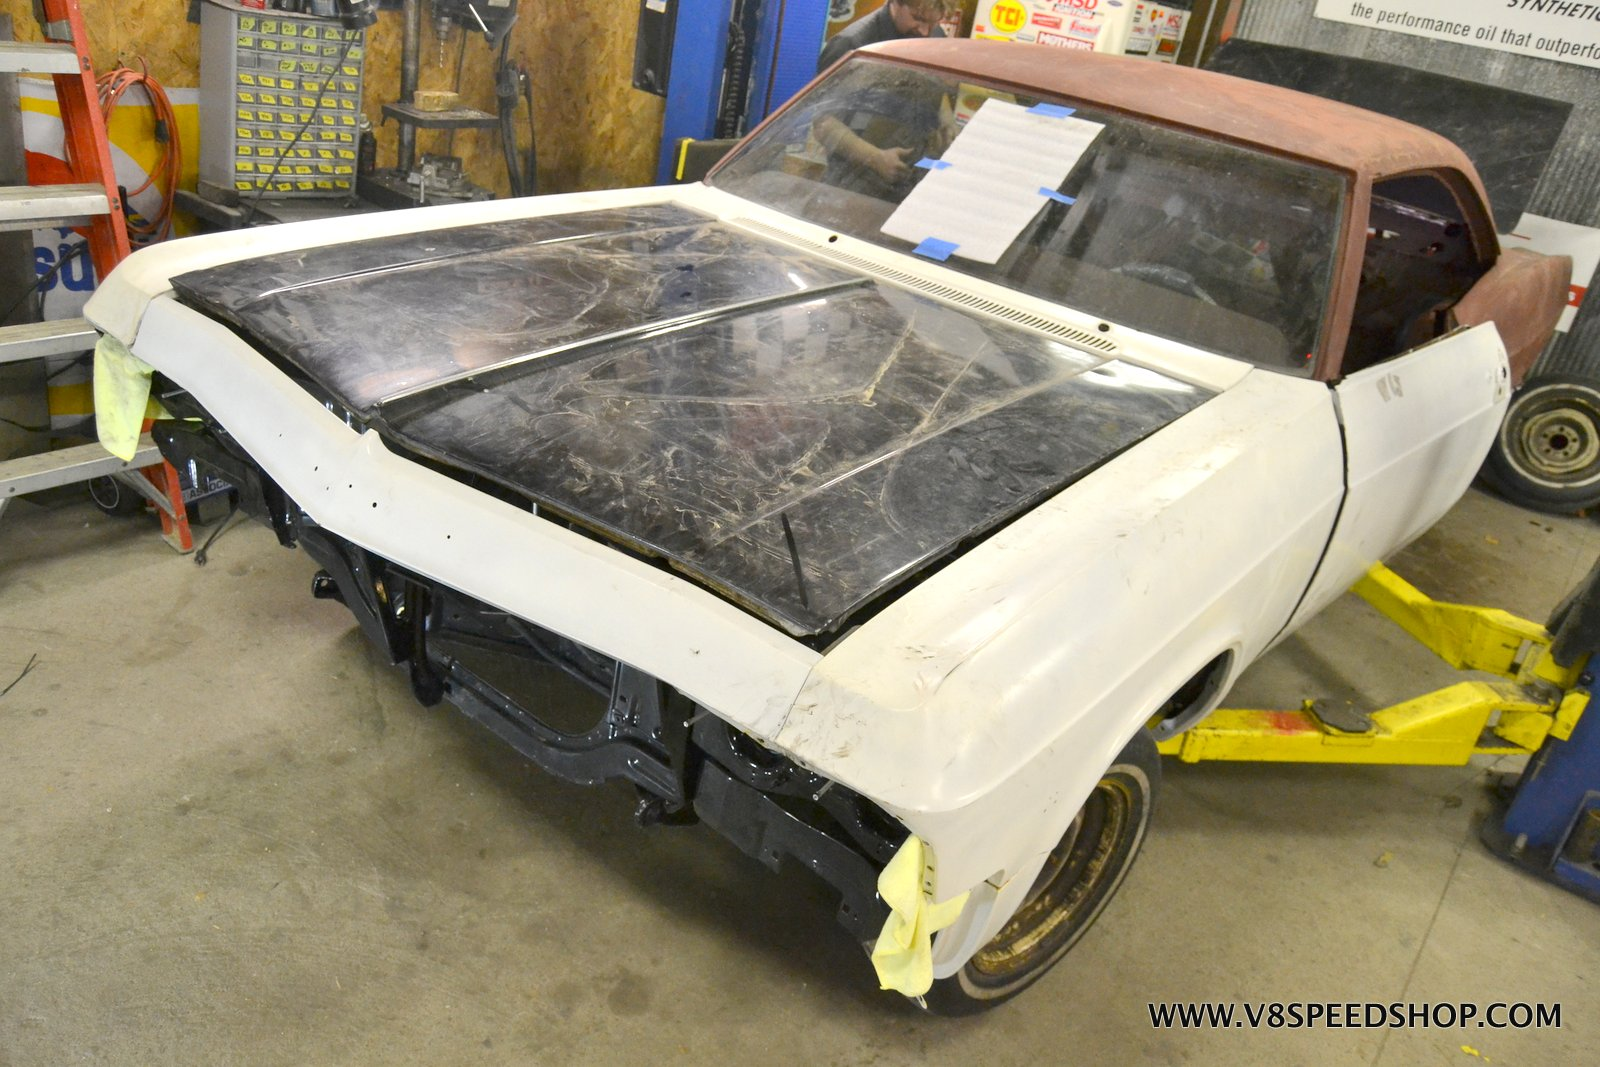 1965 Chevrolet Impala Body and Paint Restoration at the V8 Speed and Resto Shop